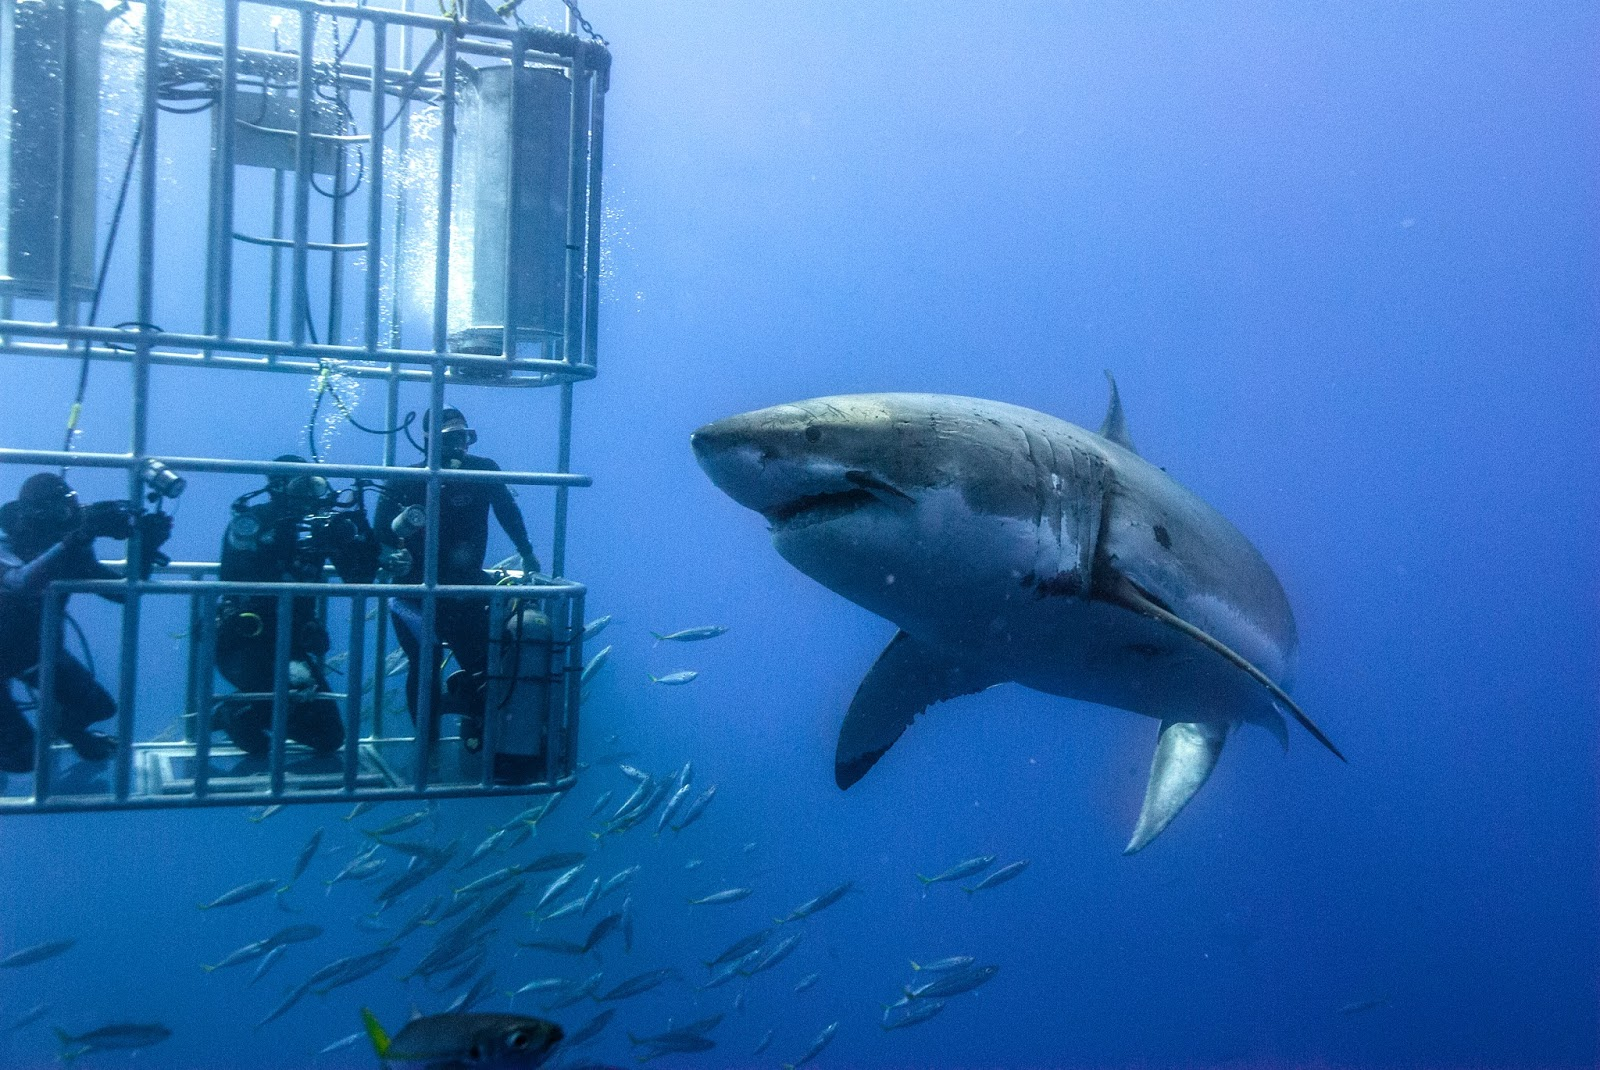 Deep Cage Diving In Isla Guadalupe From Great White Shark Photo By Luke Cresswell